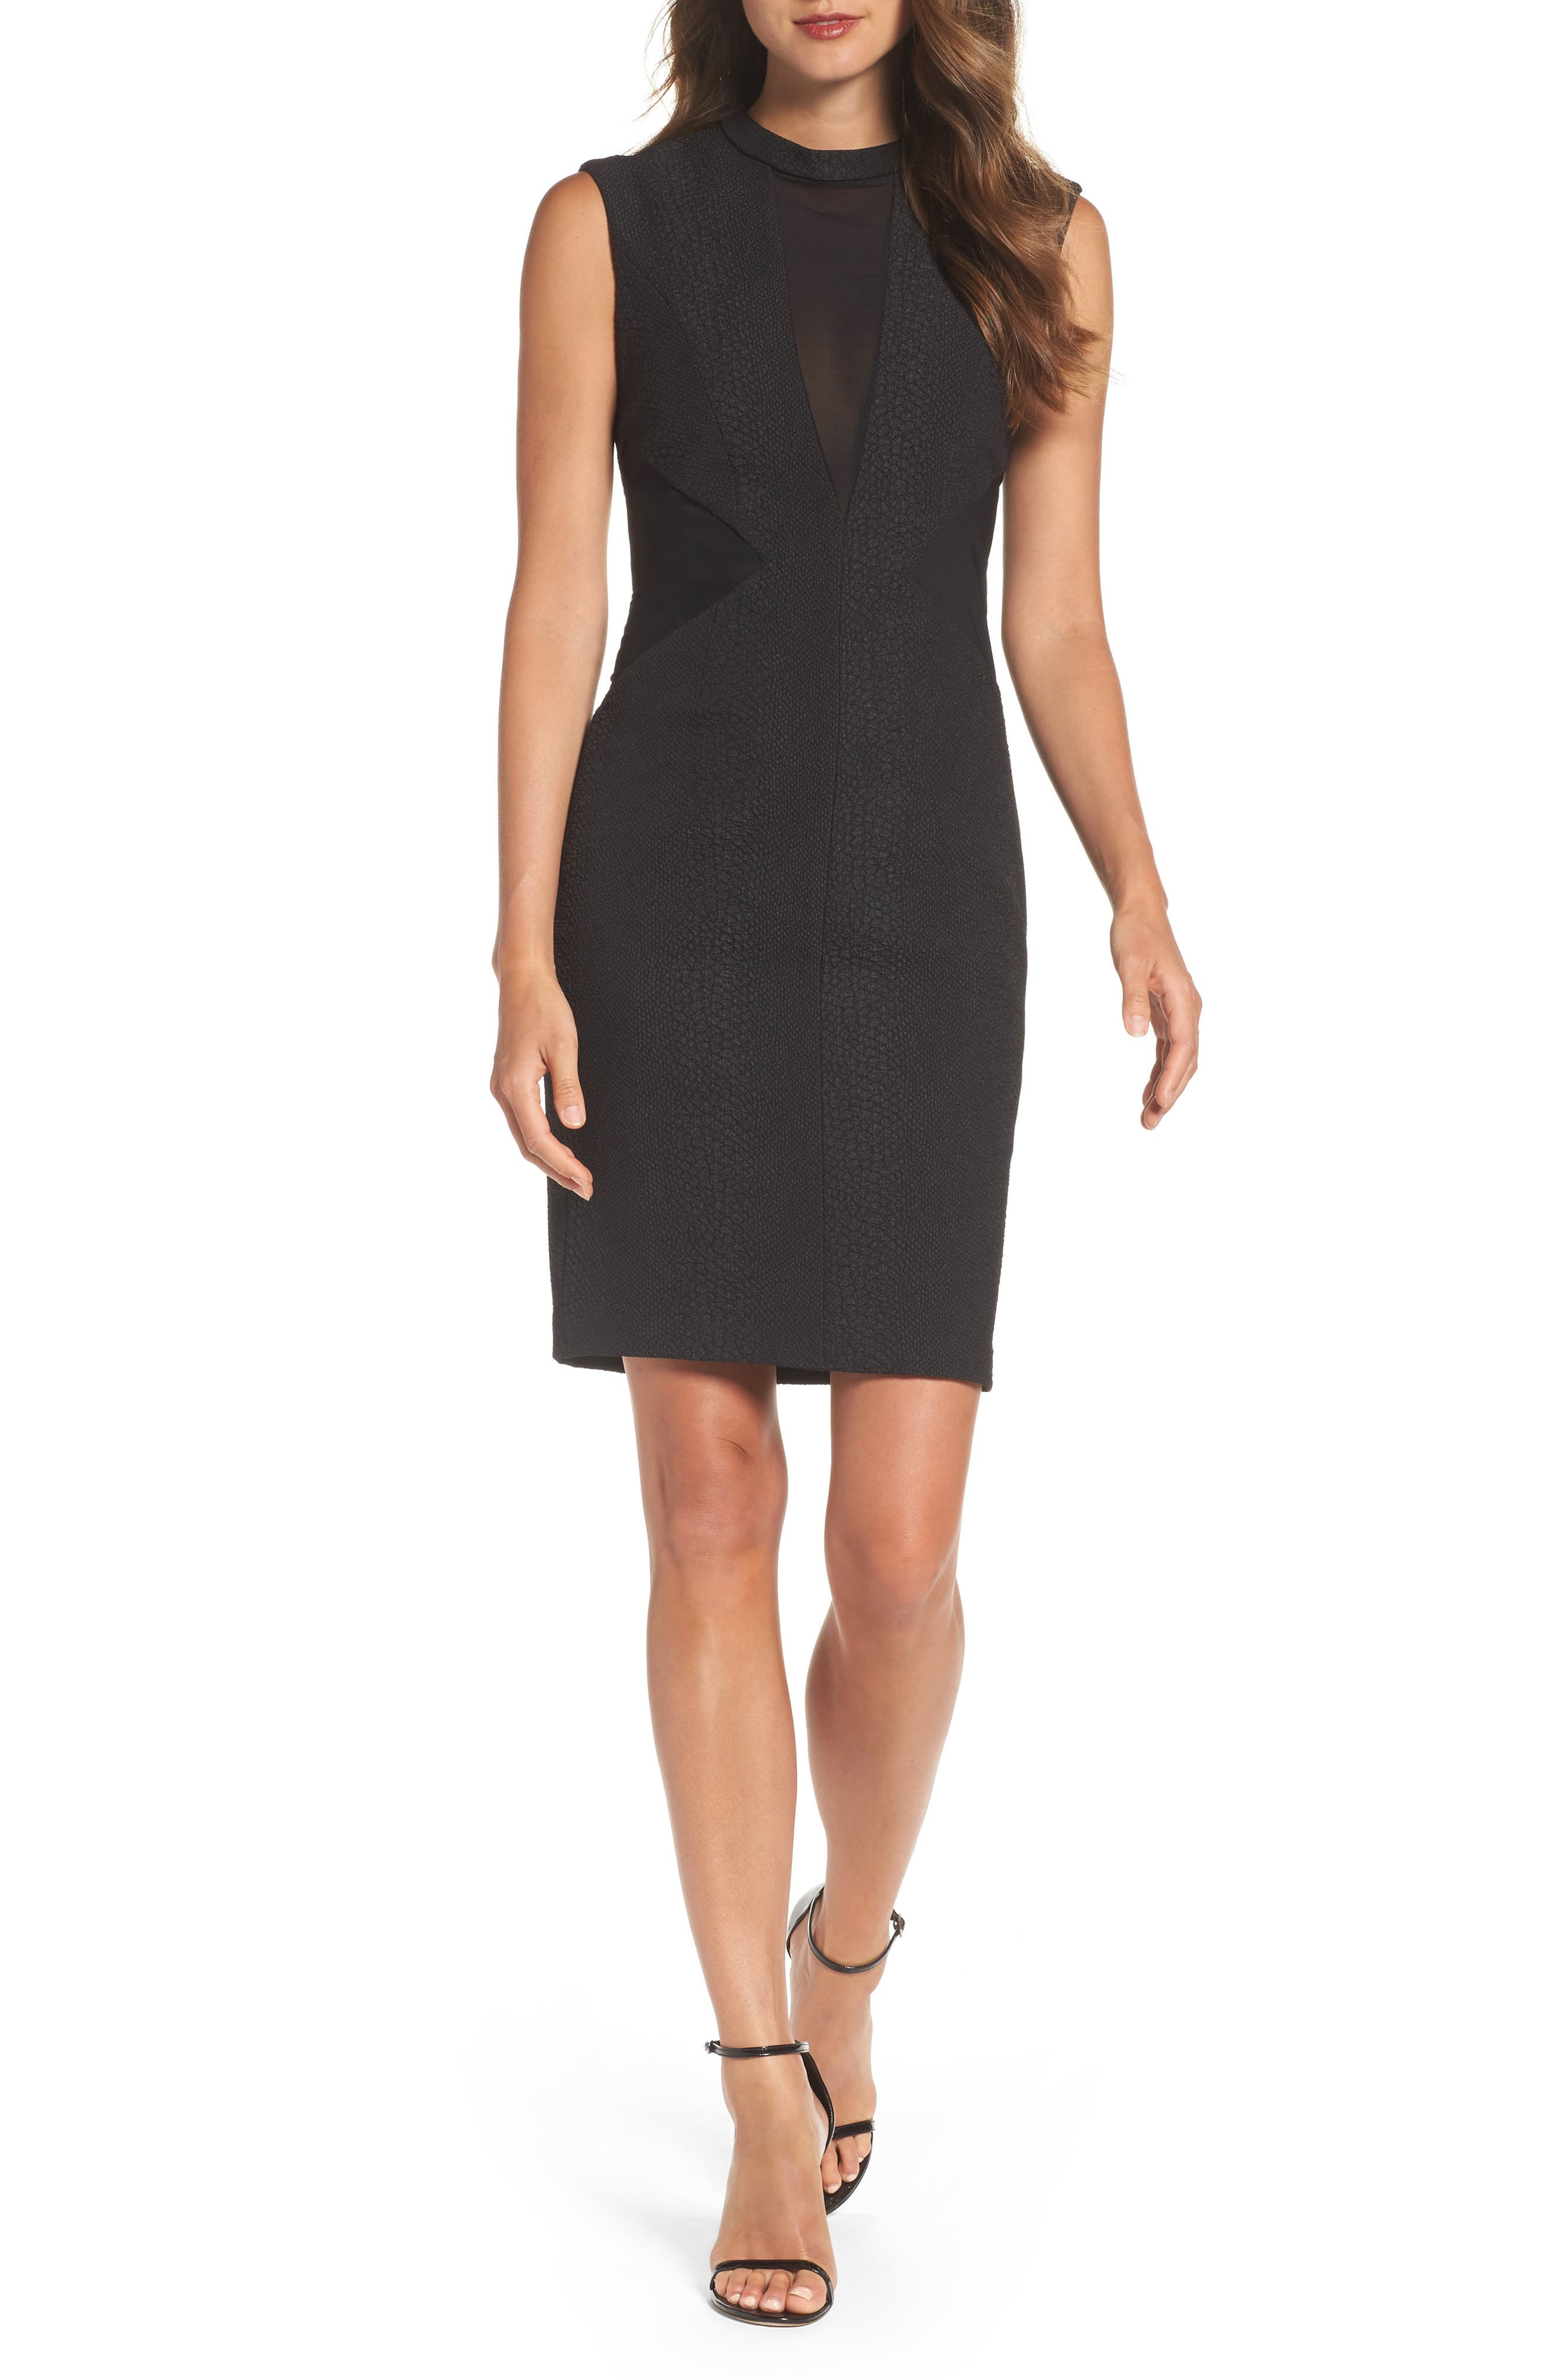 Alternate Image 1 Selected - Bardot Croc Texture Panel Dress